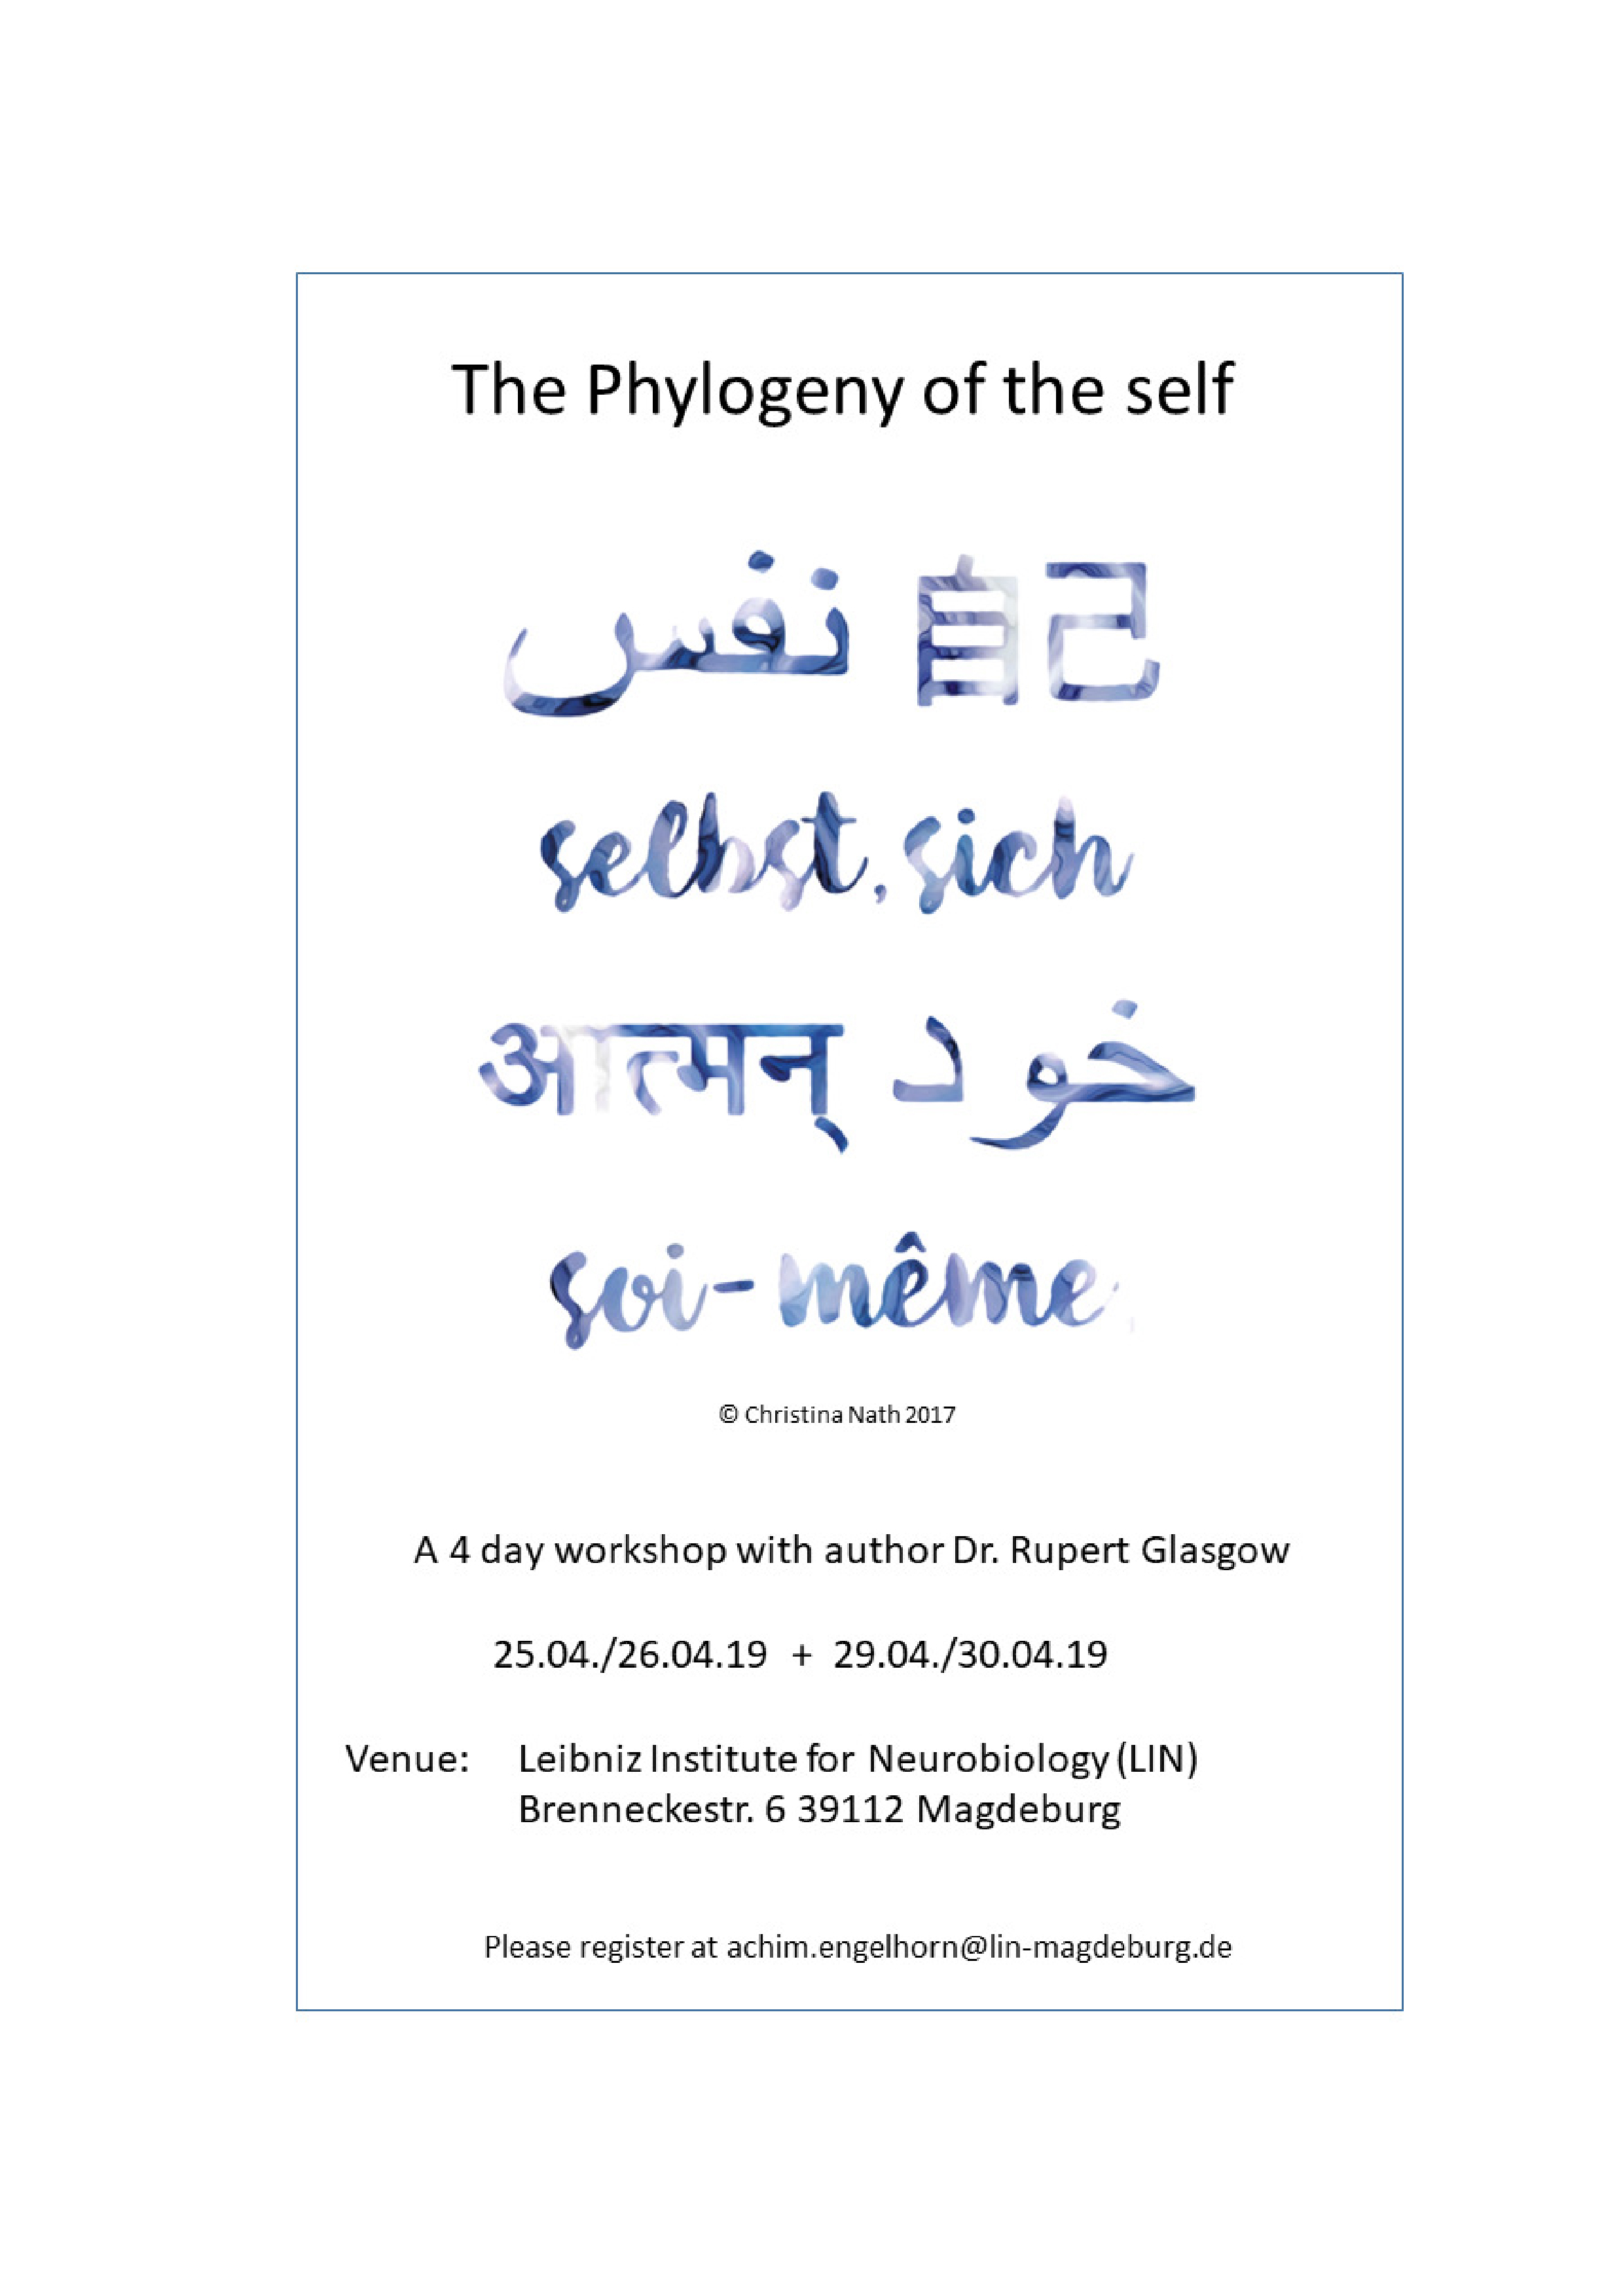 CRC 779 Workshop: The Phylogeny of the self @ Leibniz-Institute for Neurobiology